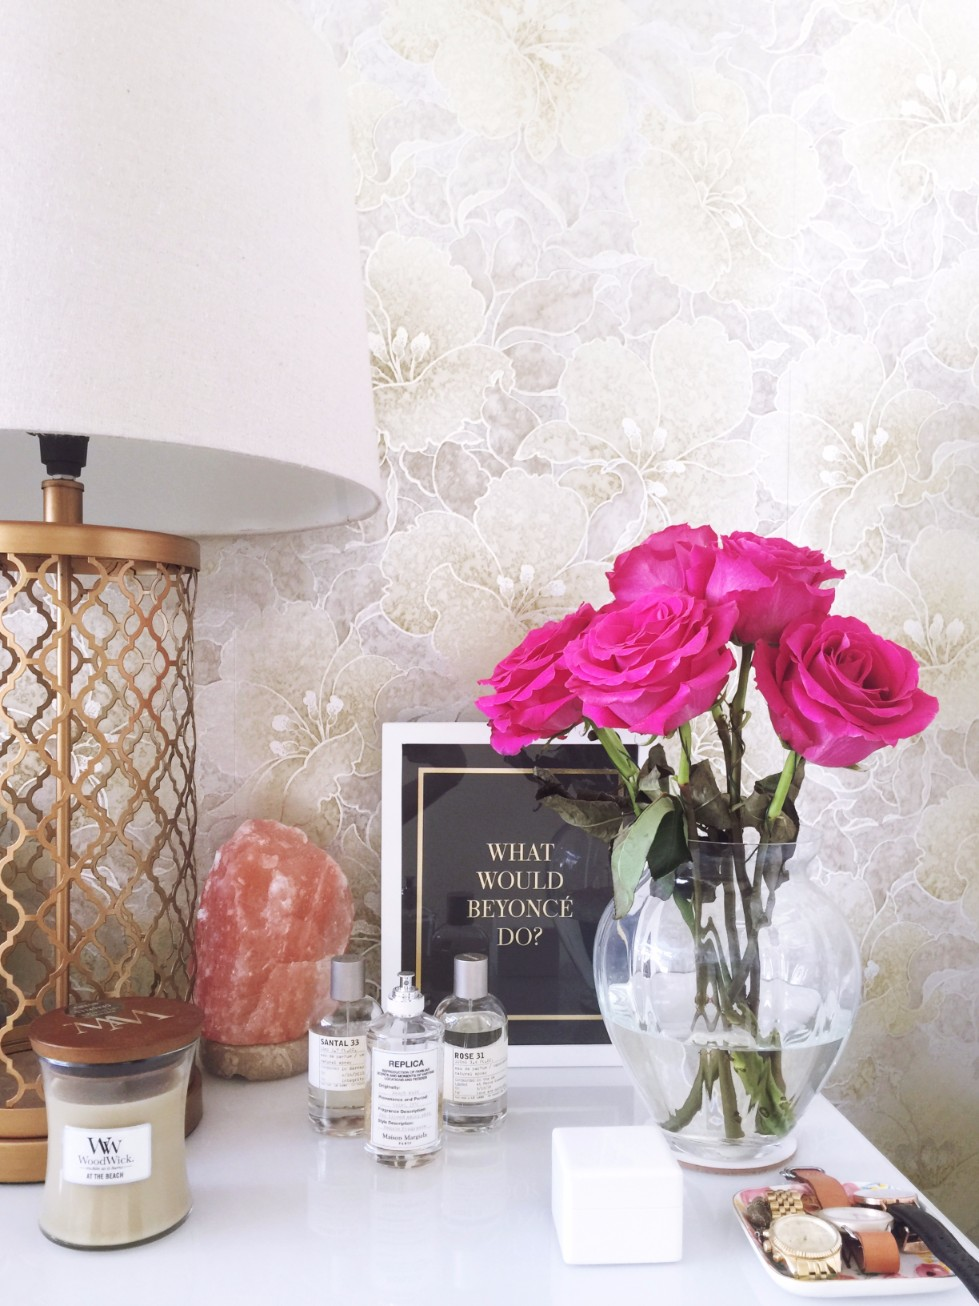 How to style your bedside table home decor tips what would beyonce do quote woodwick candle maison margiela replica beach walk perfume le labo santal 33